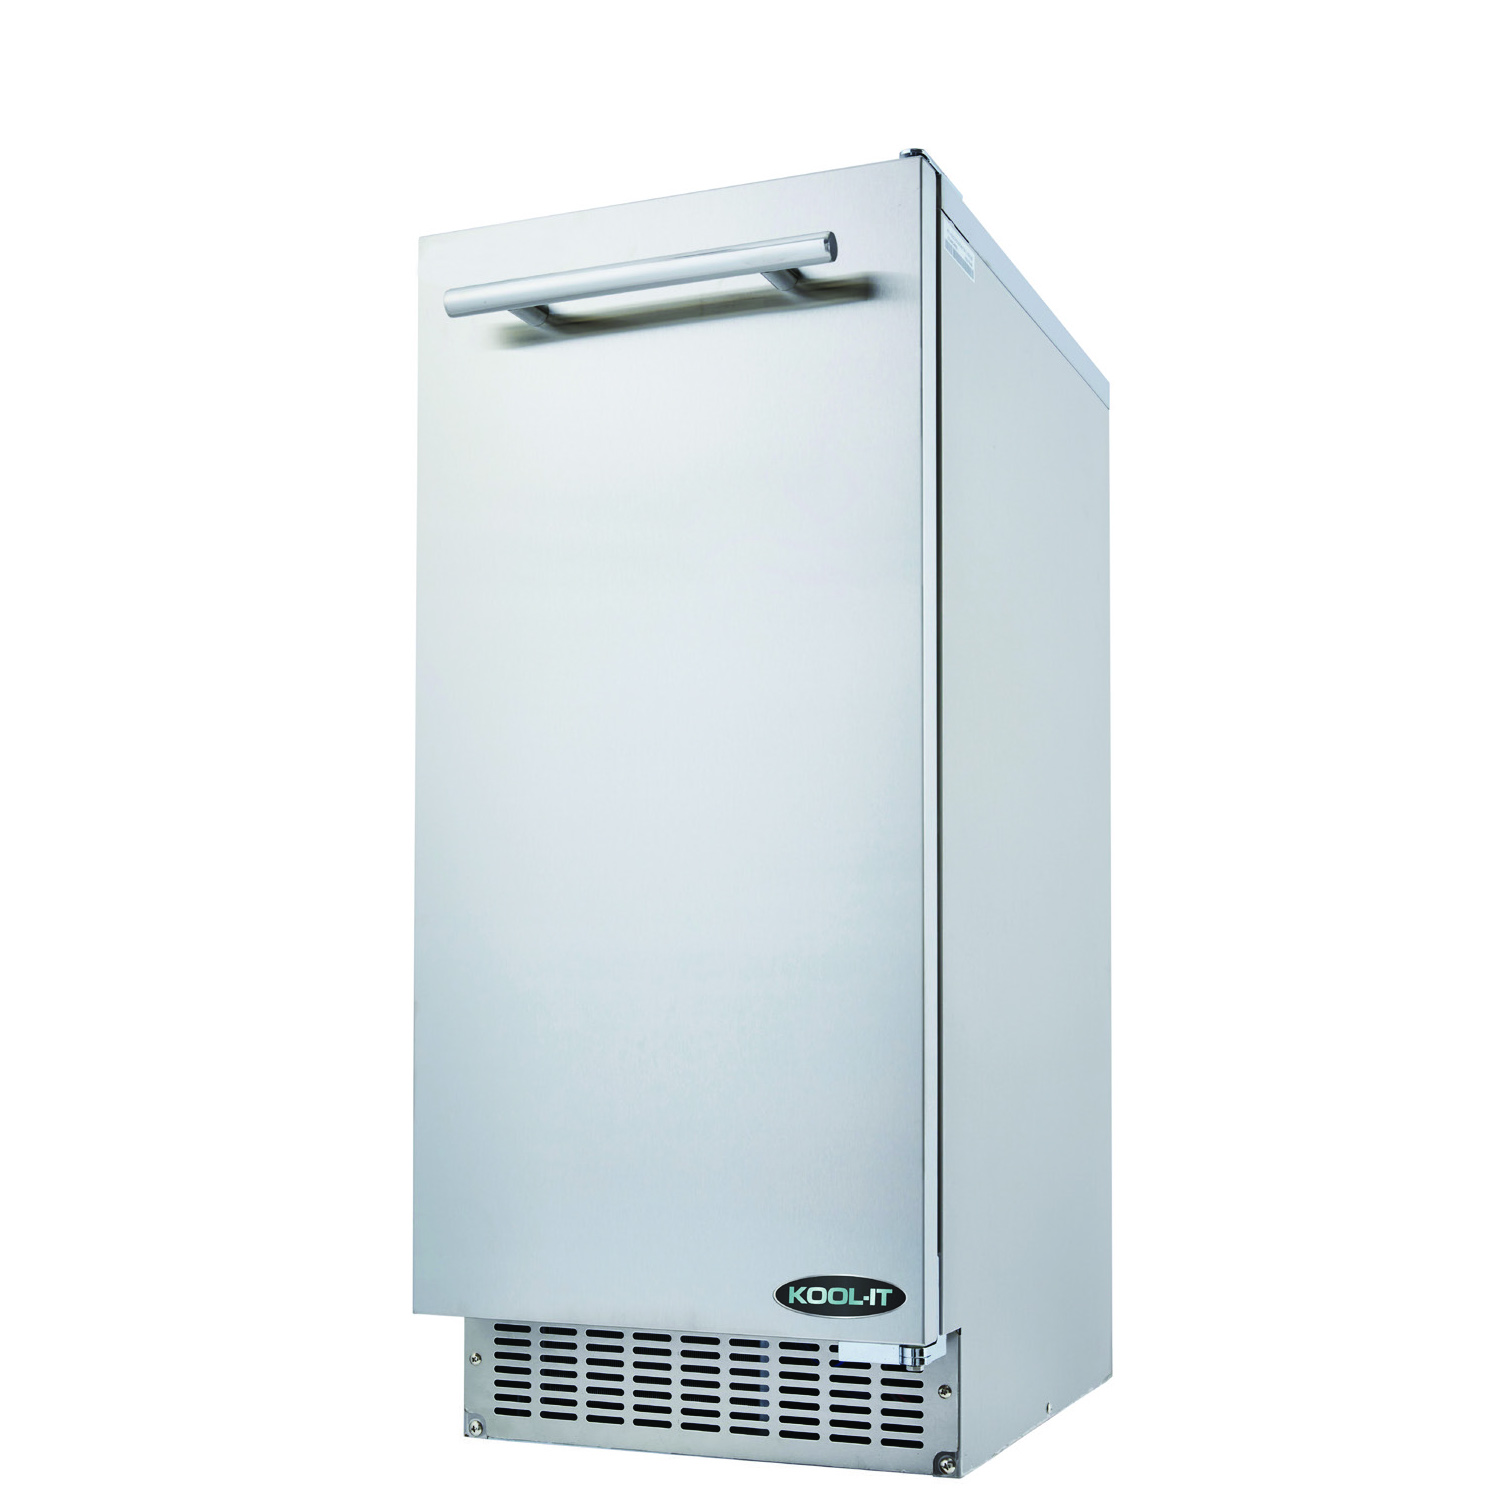 MVP KOU-70-AB ice maker with bin, cube-style